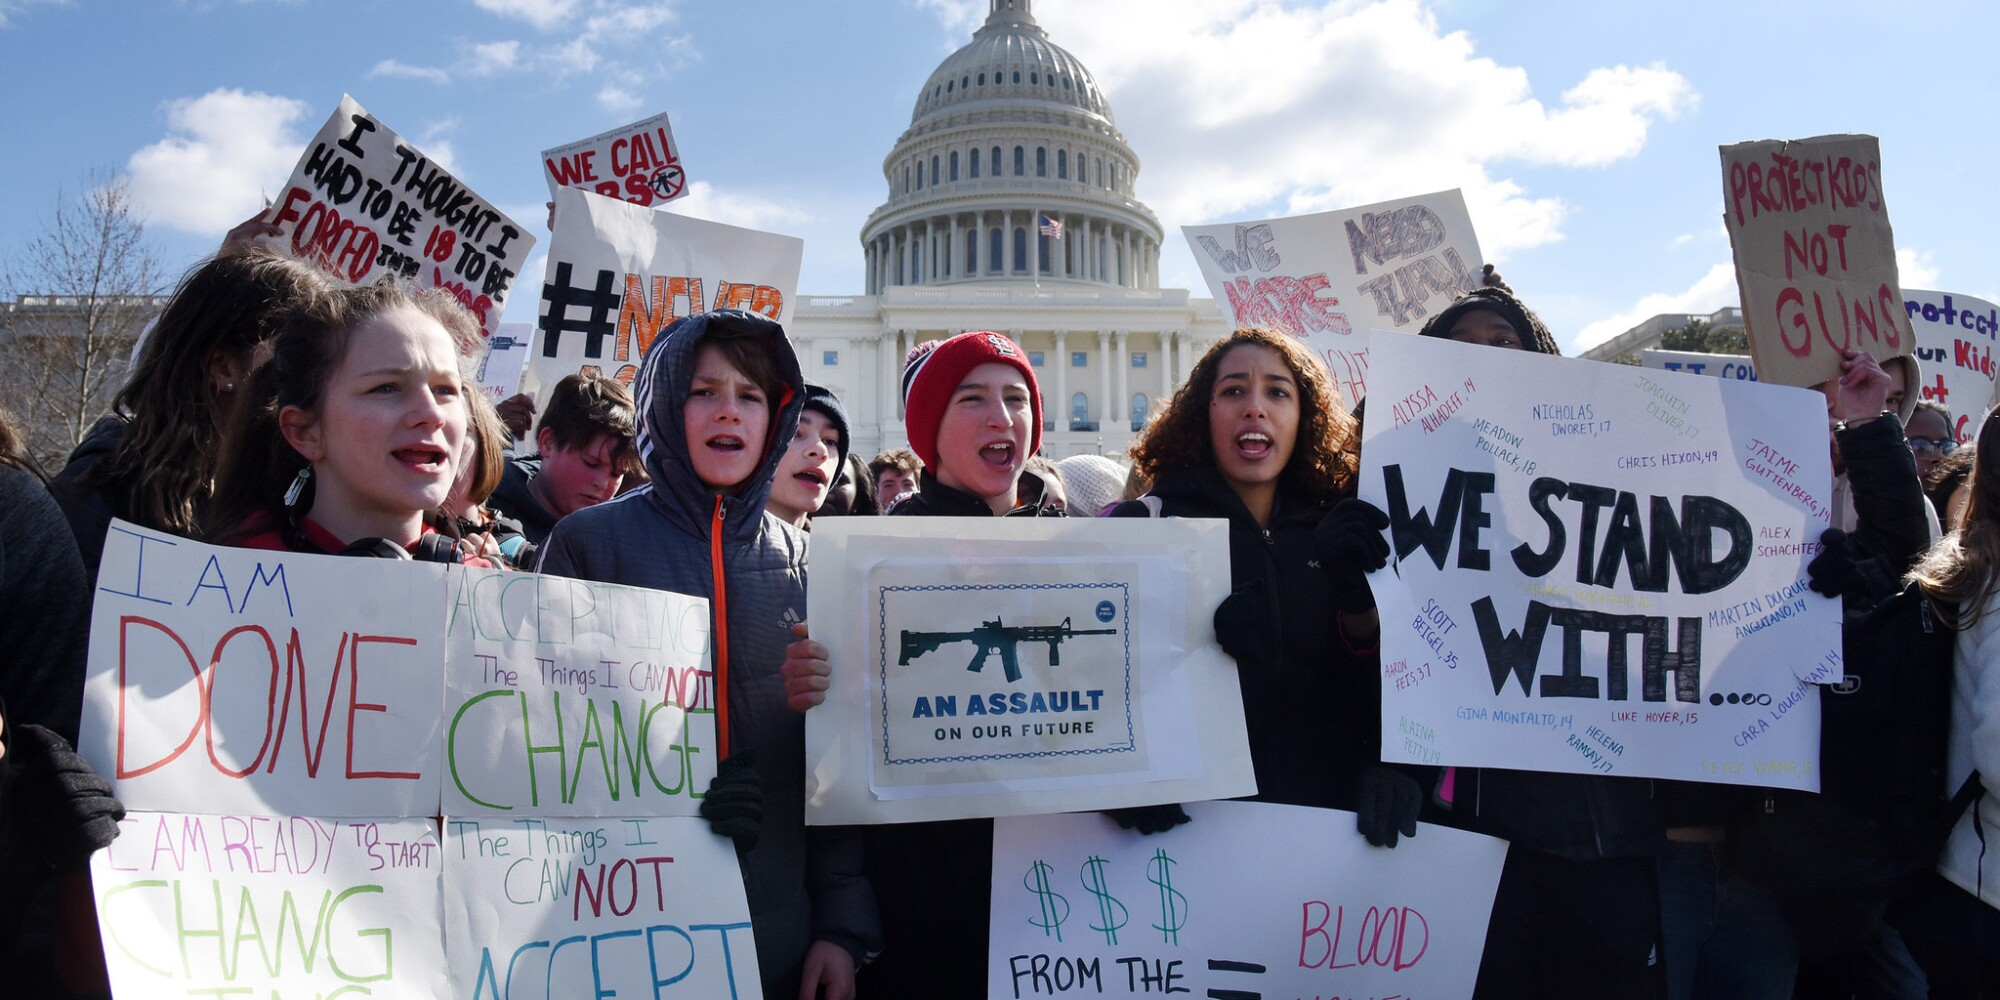 Walkout Wednesday: Students march out of schools nationwide to protest gun violence